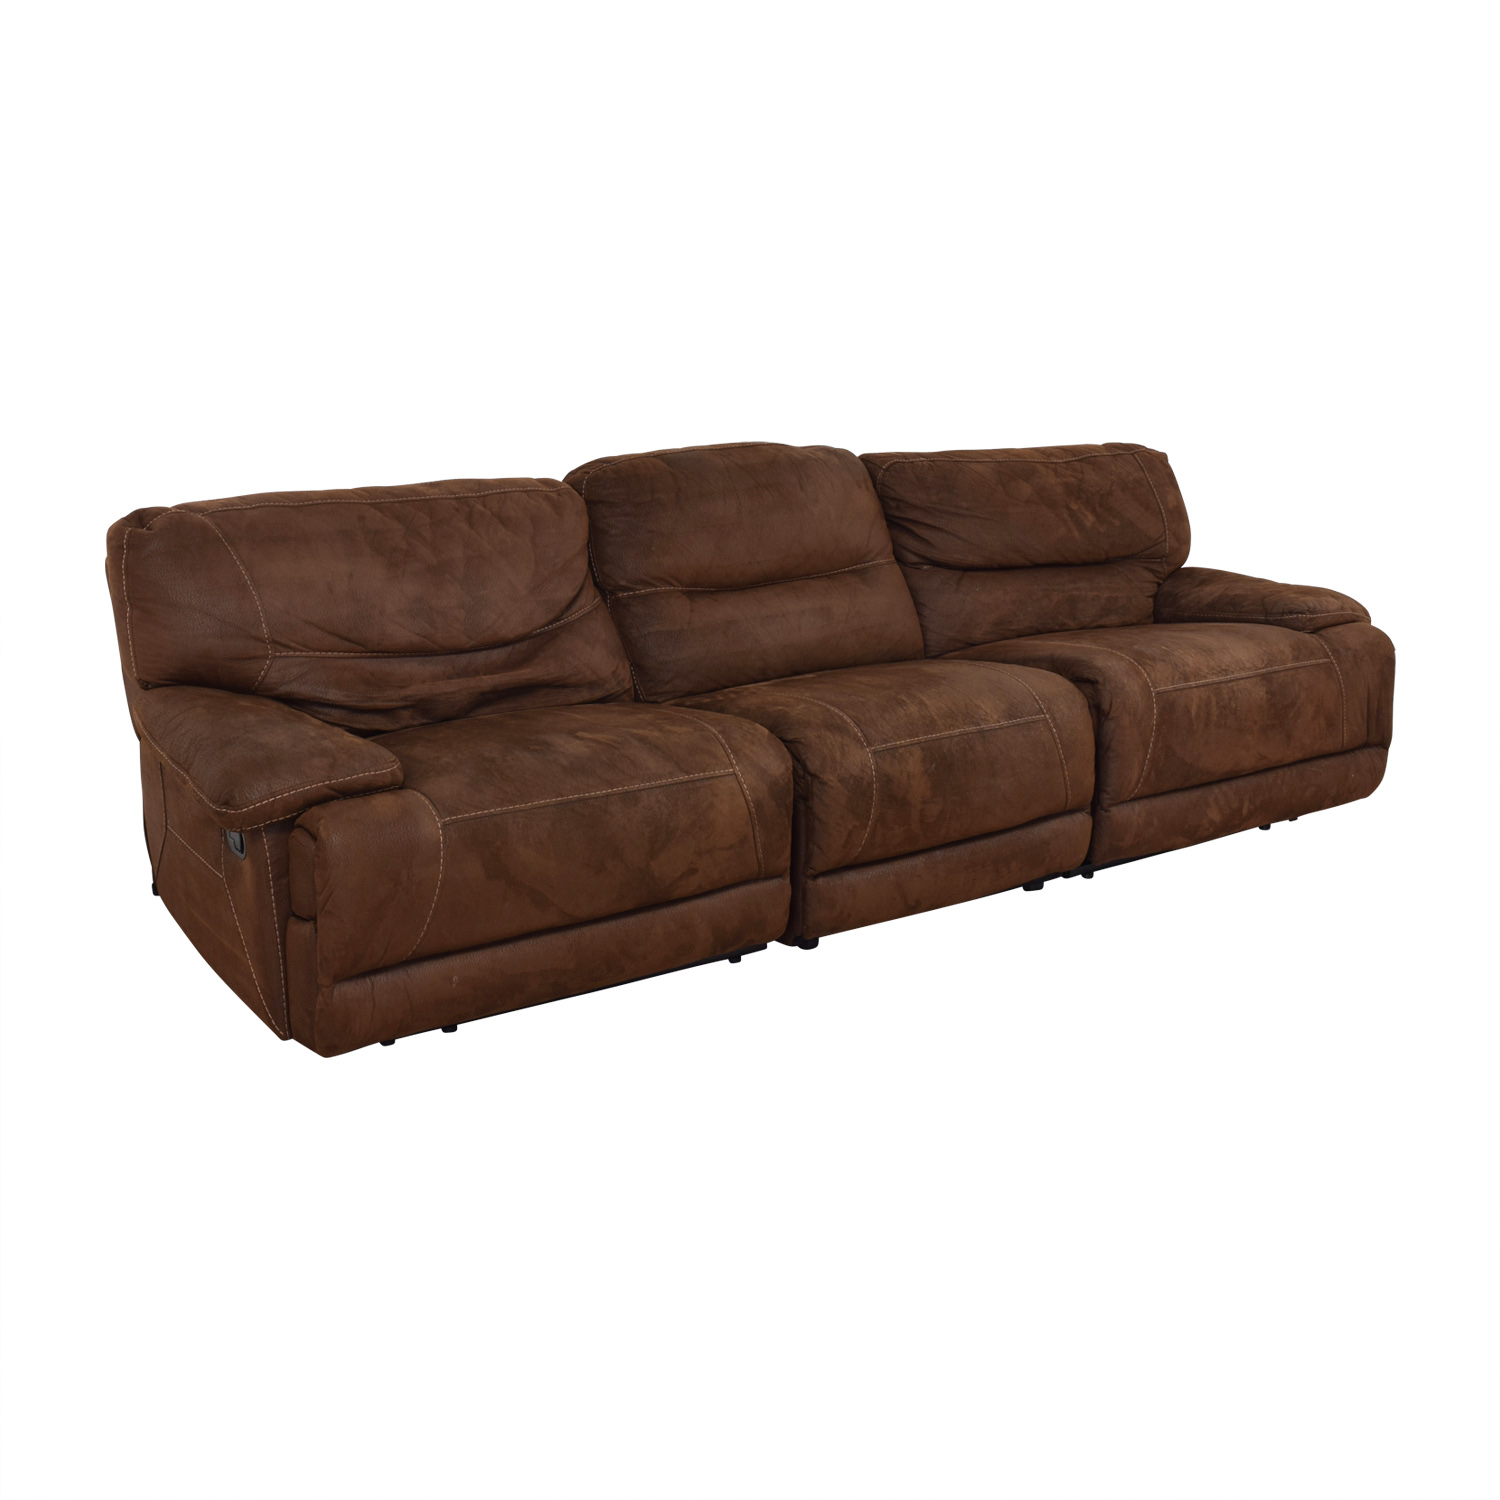 Bob's Discount Furniture Bob's Discount Furniture Reclining Sectional second hand